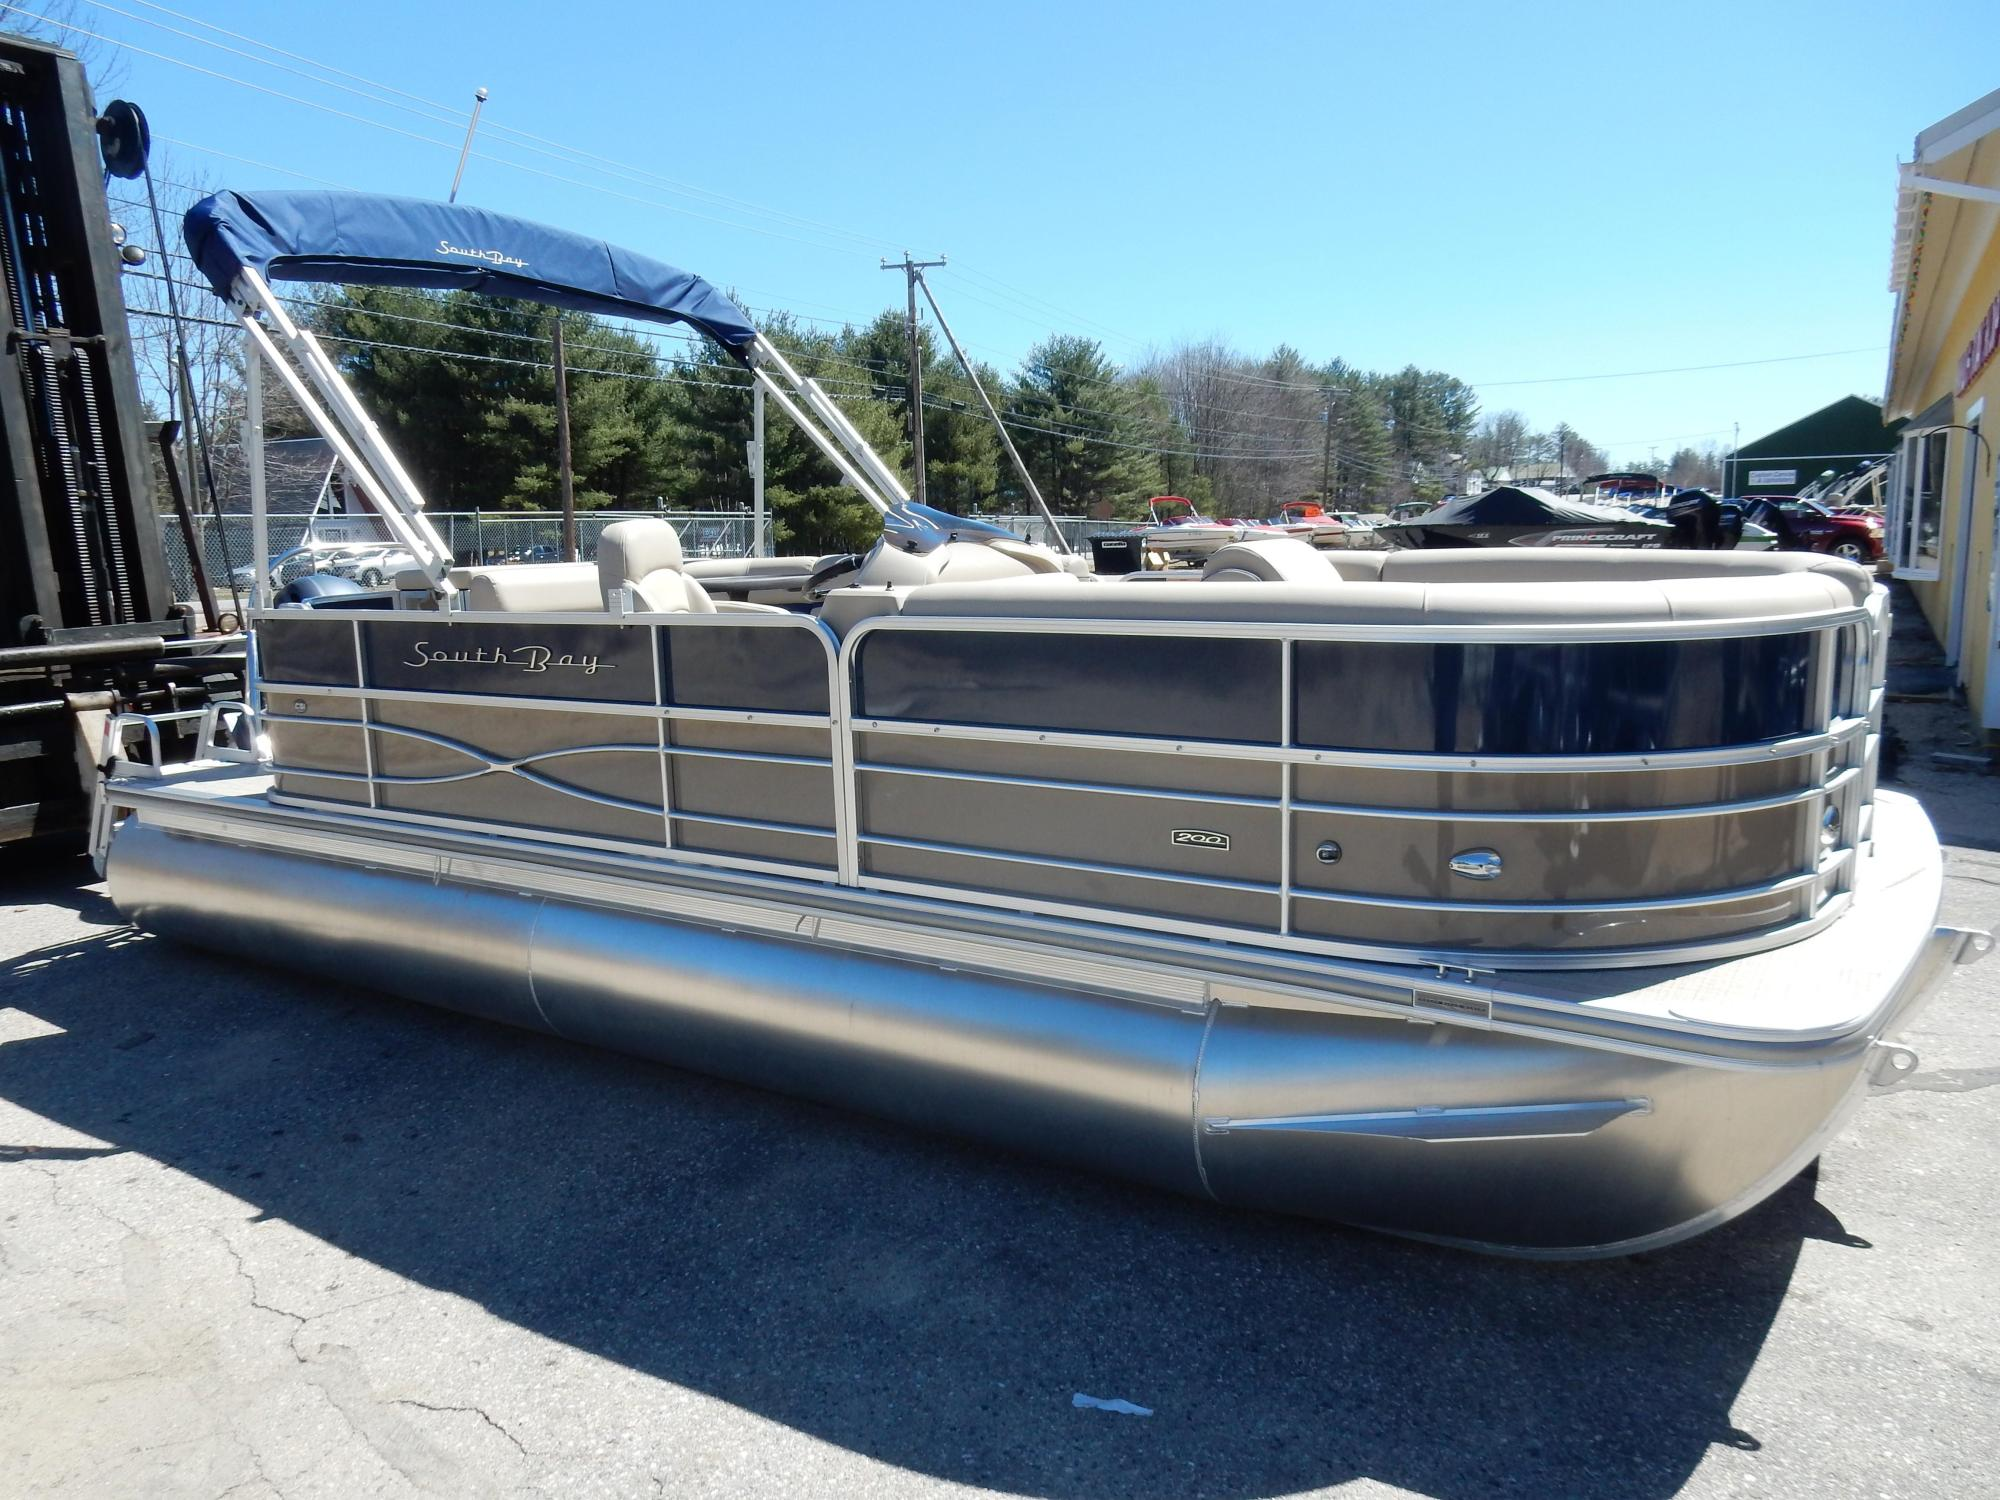 hight resolution of 2019 south bay 222cr center ossipee new hampshire wards boat shop inc center ossipee nh new used boat sales and service